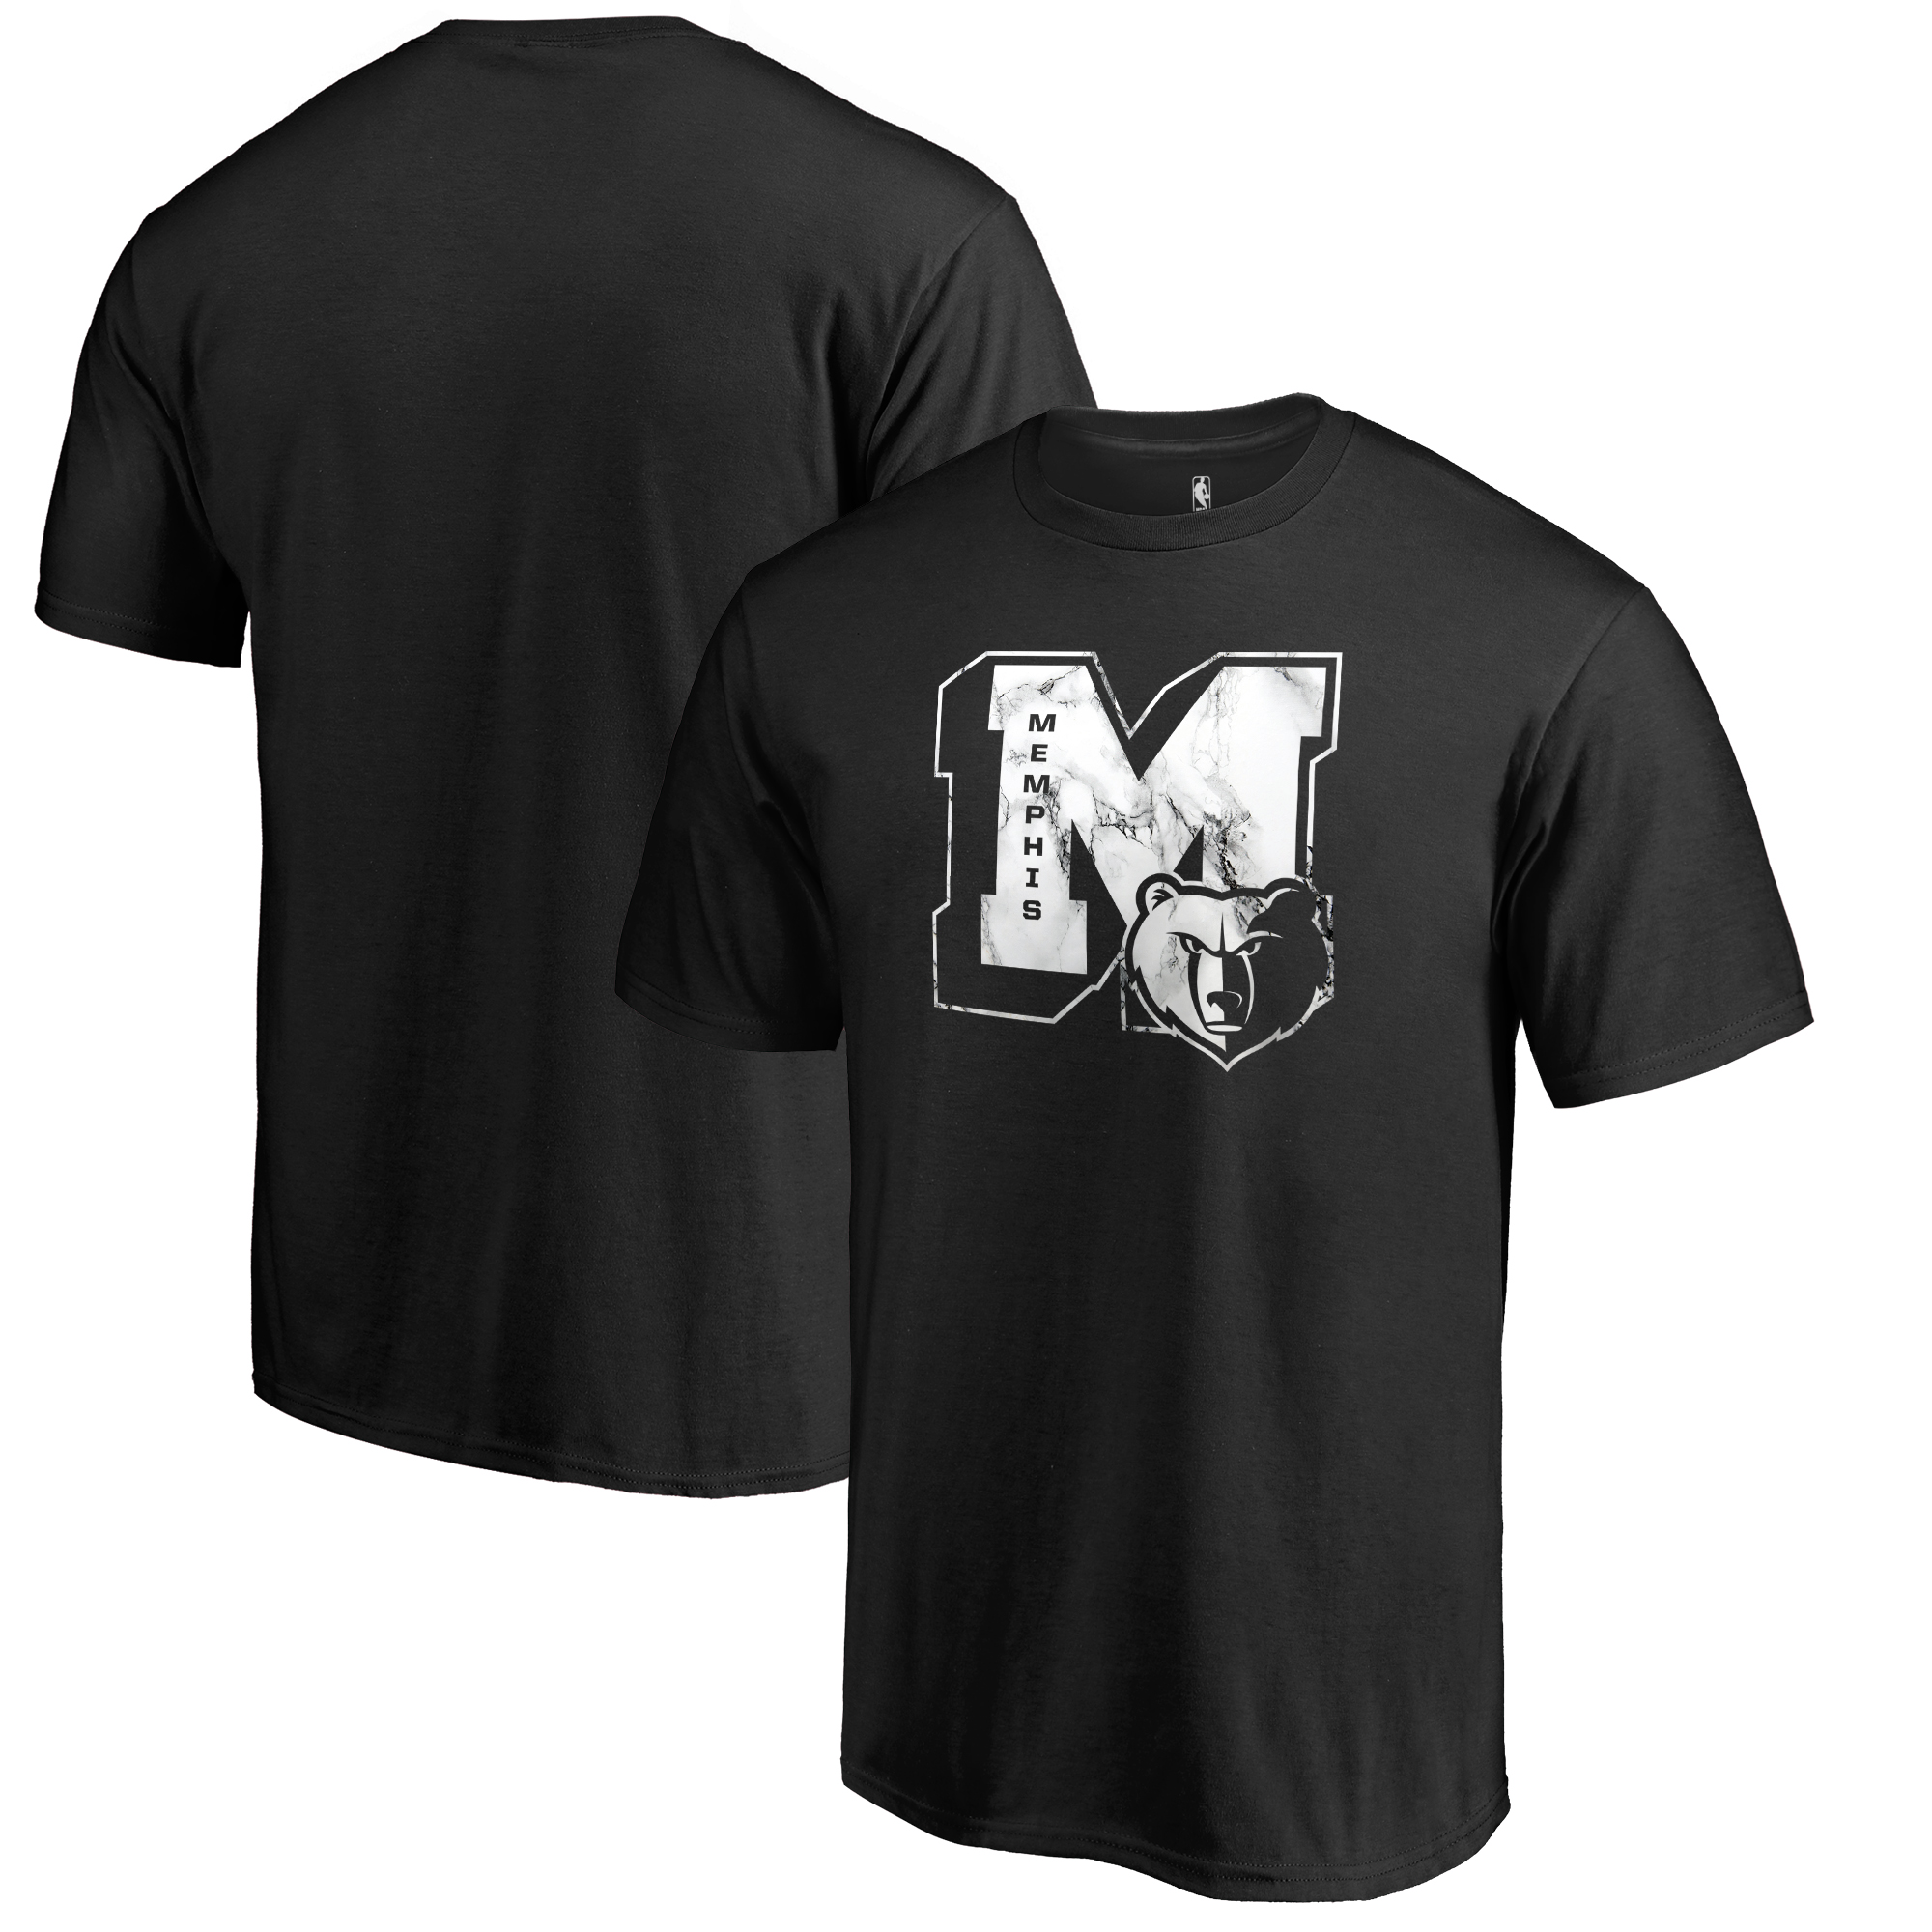 Memphis Grizzlies Fanatics Branded Letterman T-Shirt - Black